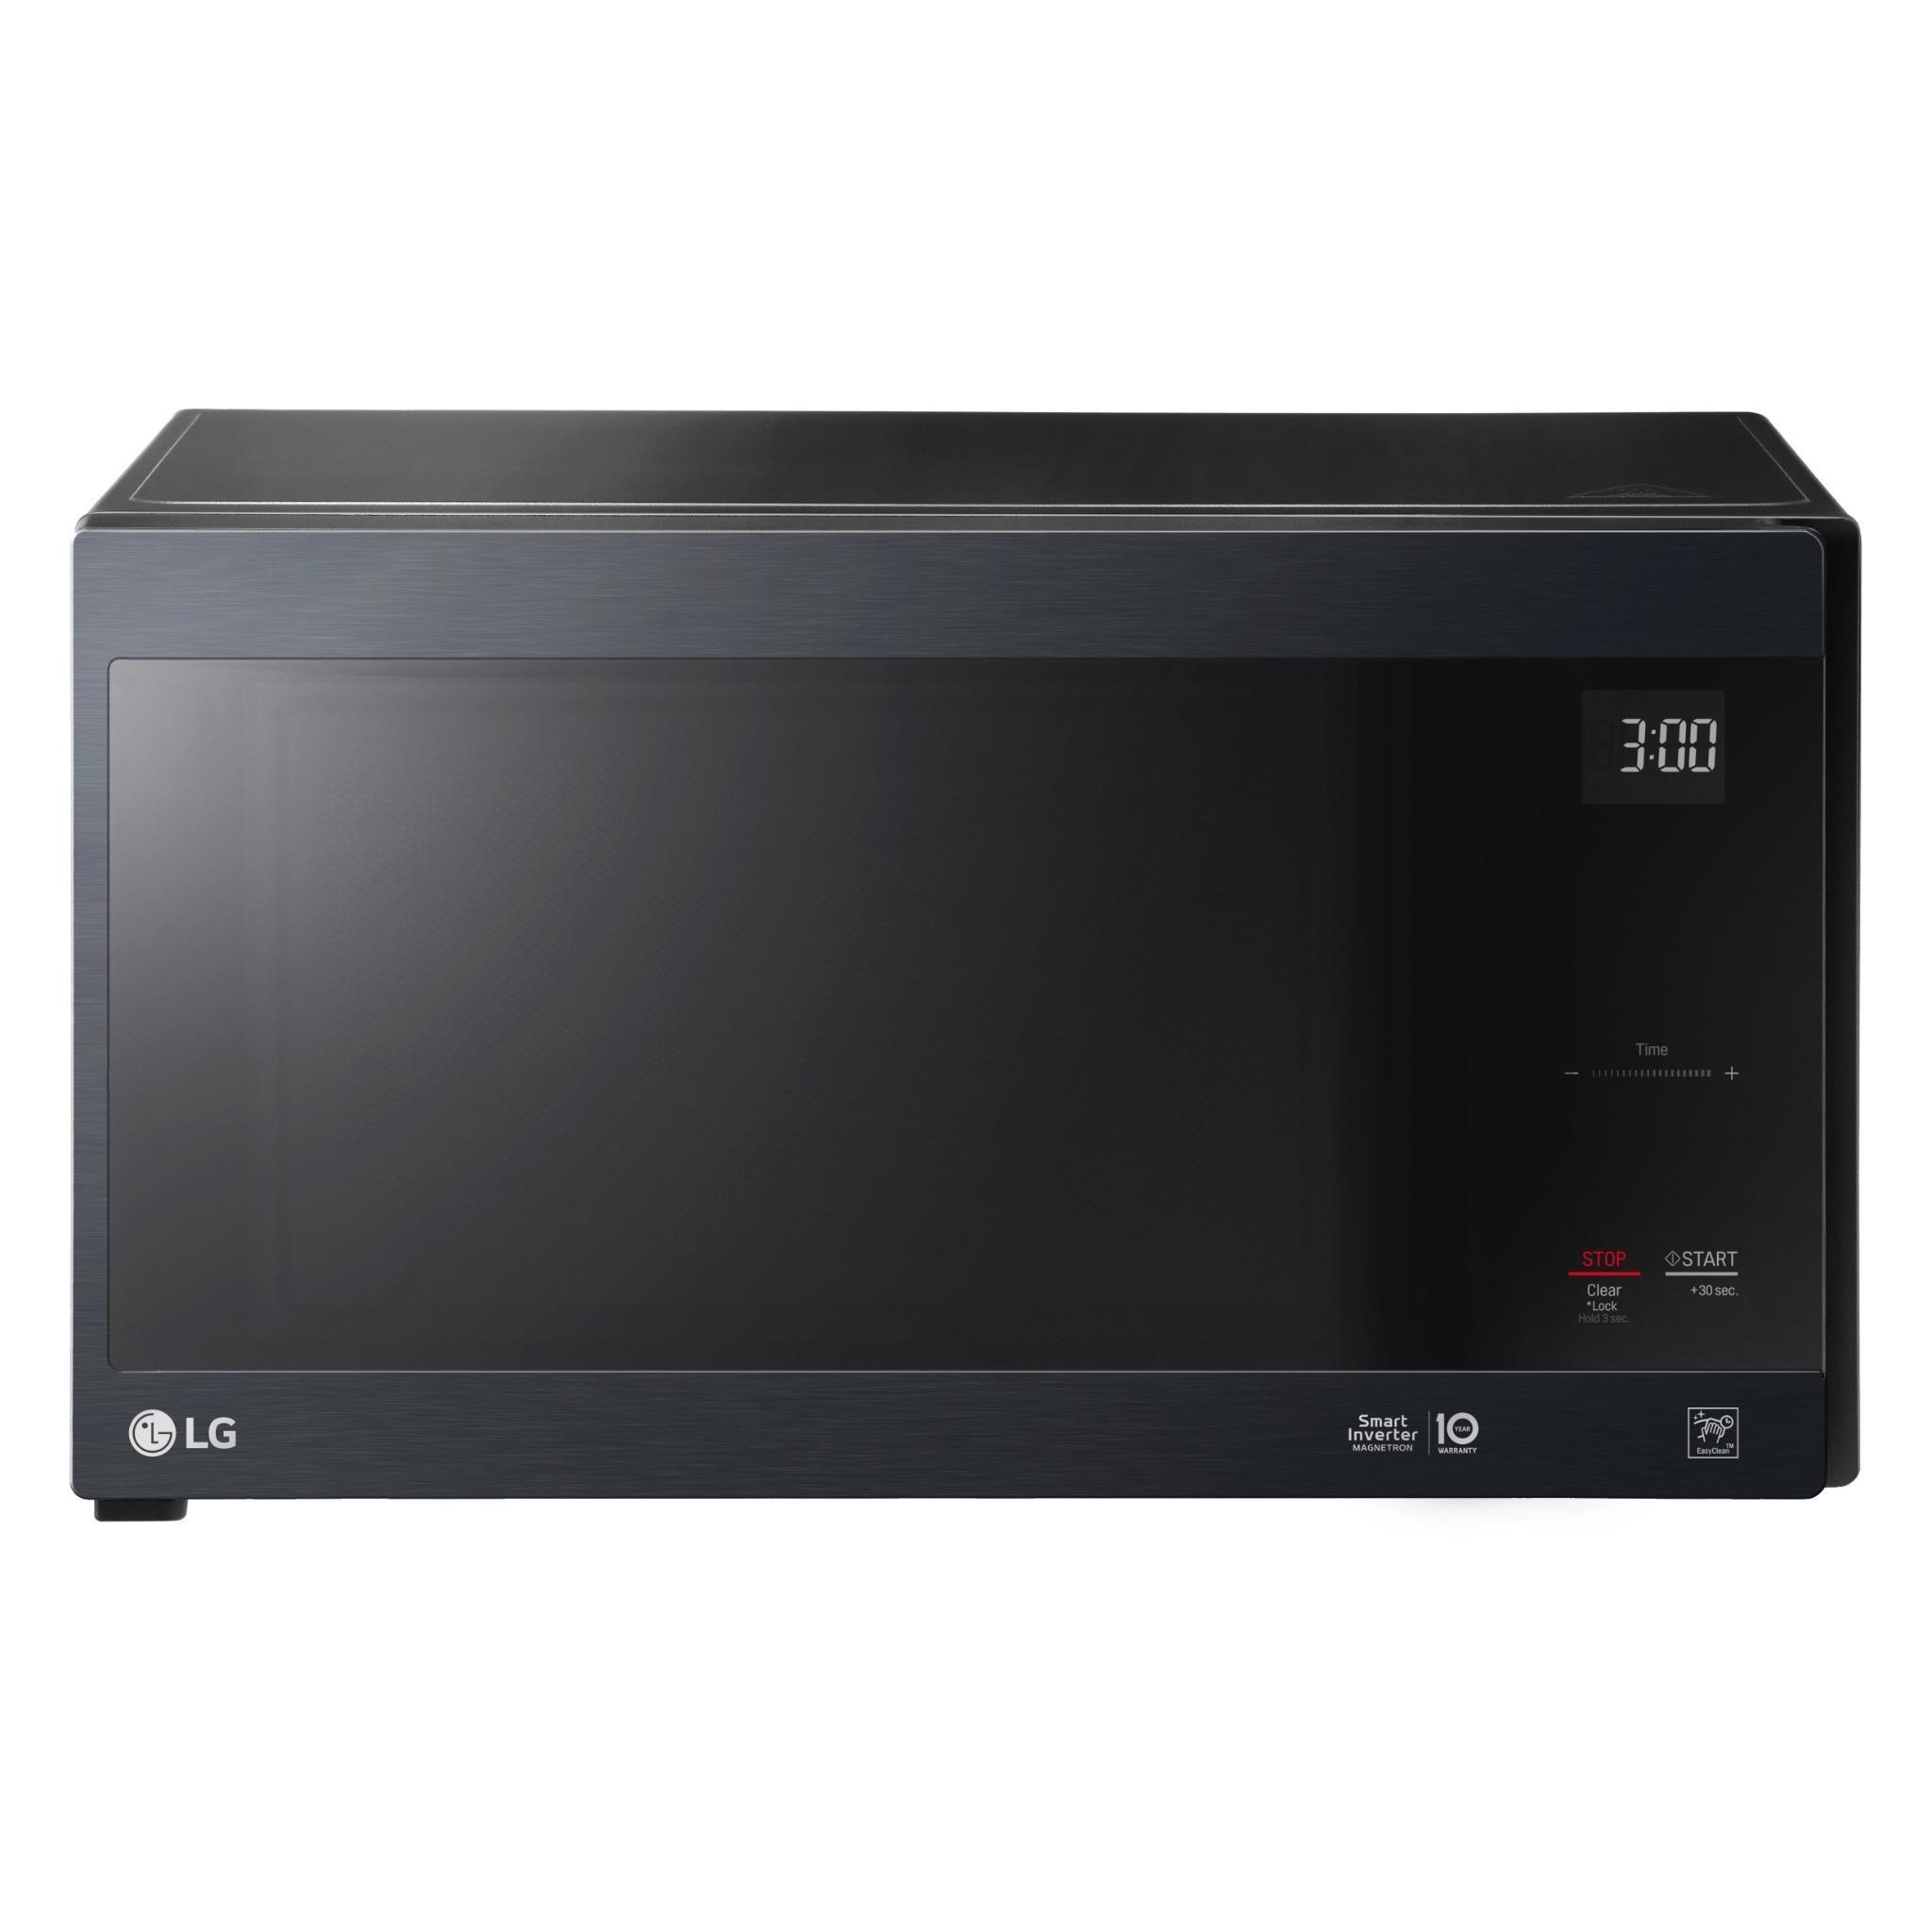 LG SOLO 42L 1200W Touch Control Microwave